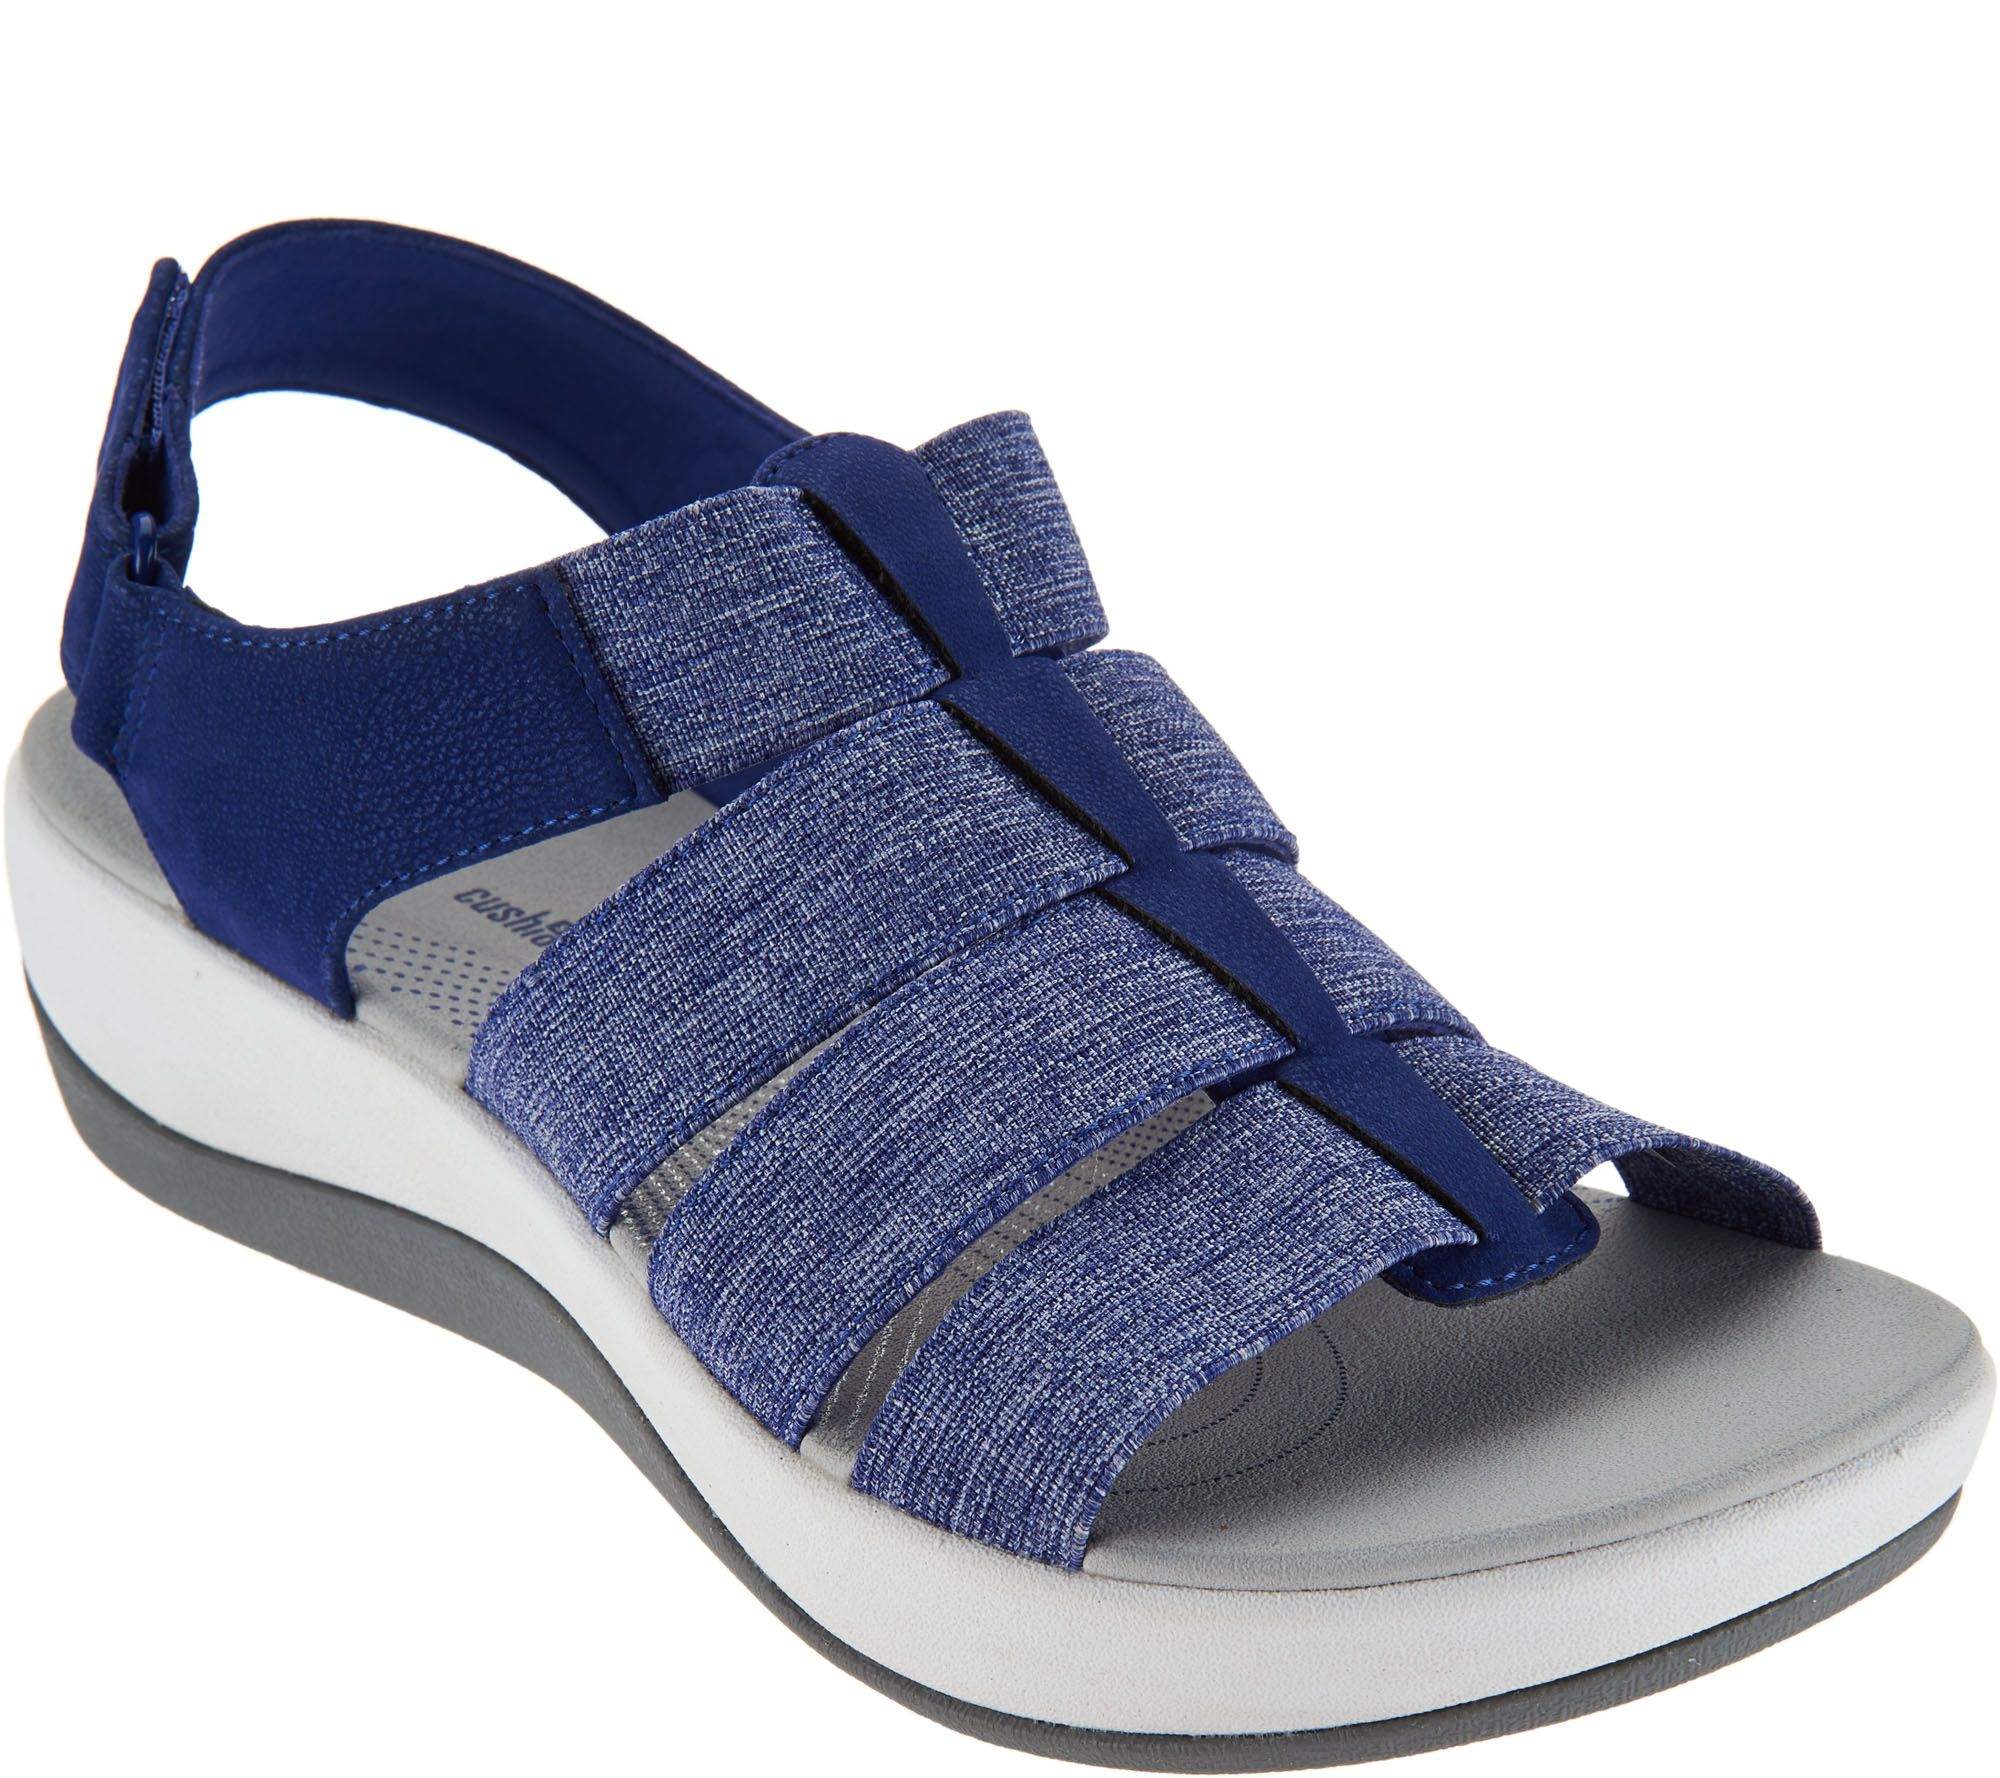 4b1d52f35d84 CLOUDSTEPPERS by Clarks Sport Sandals - Arla Shaylie - Page 1 — QVC.com